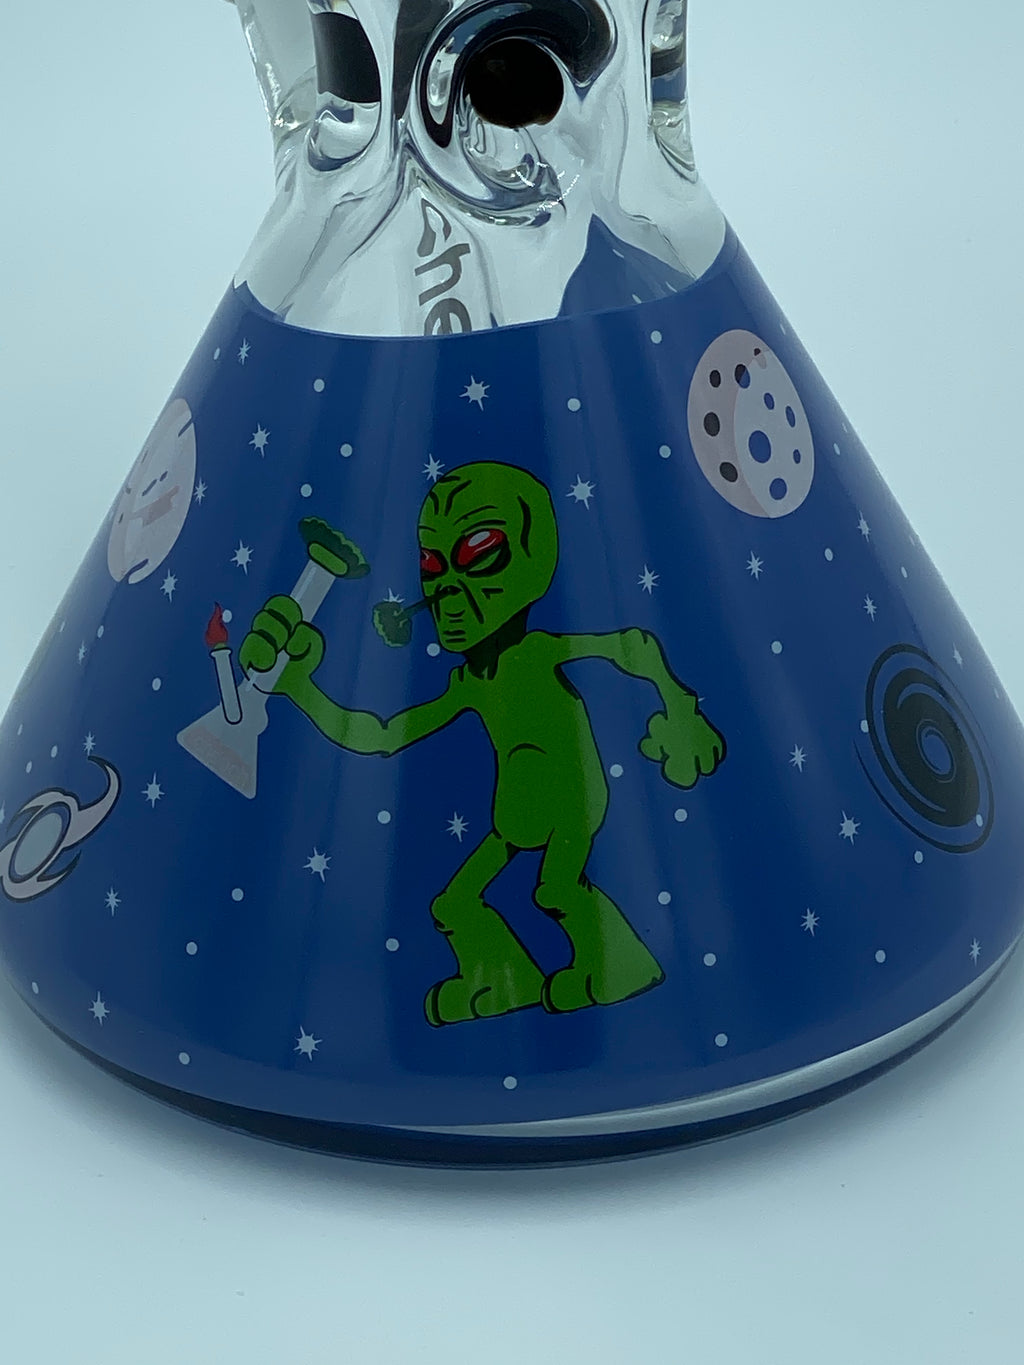 Cheech Glass 9mm Thick Alien Beaker - Smoke Country - Land of the artistic glass blown bongs